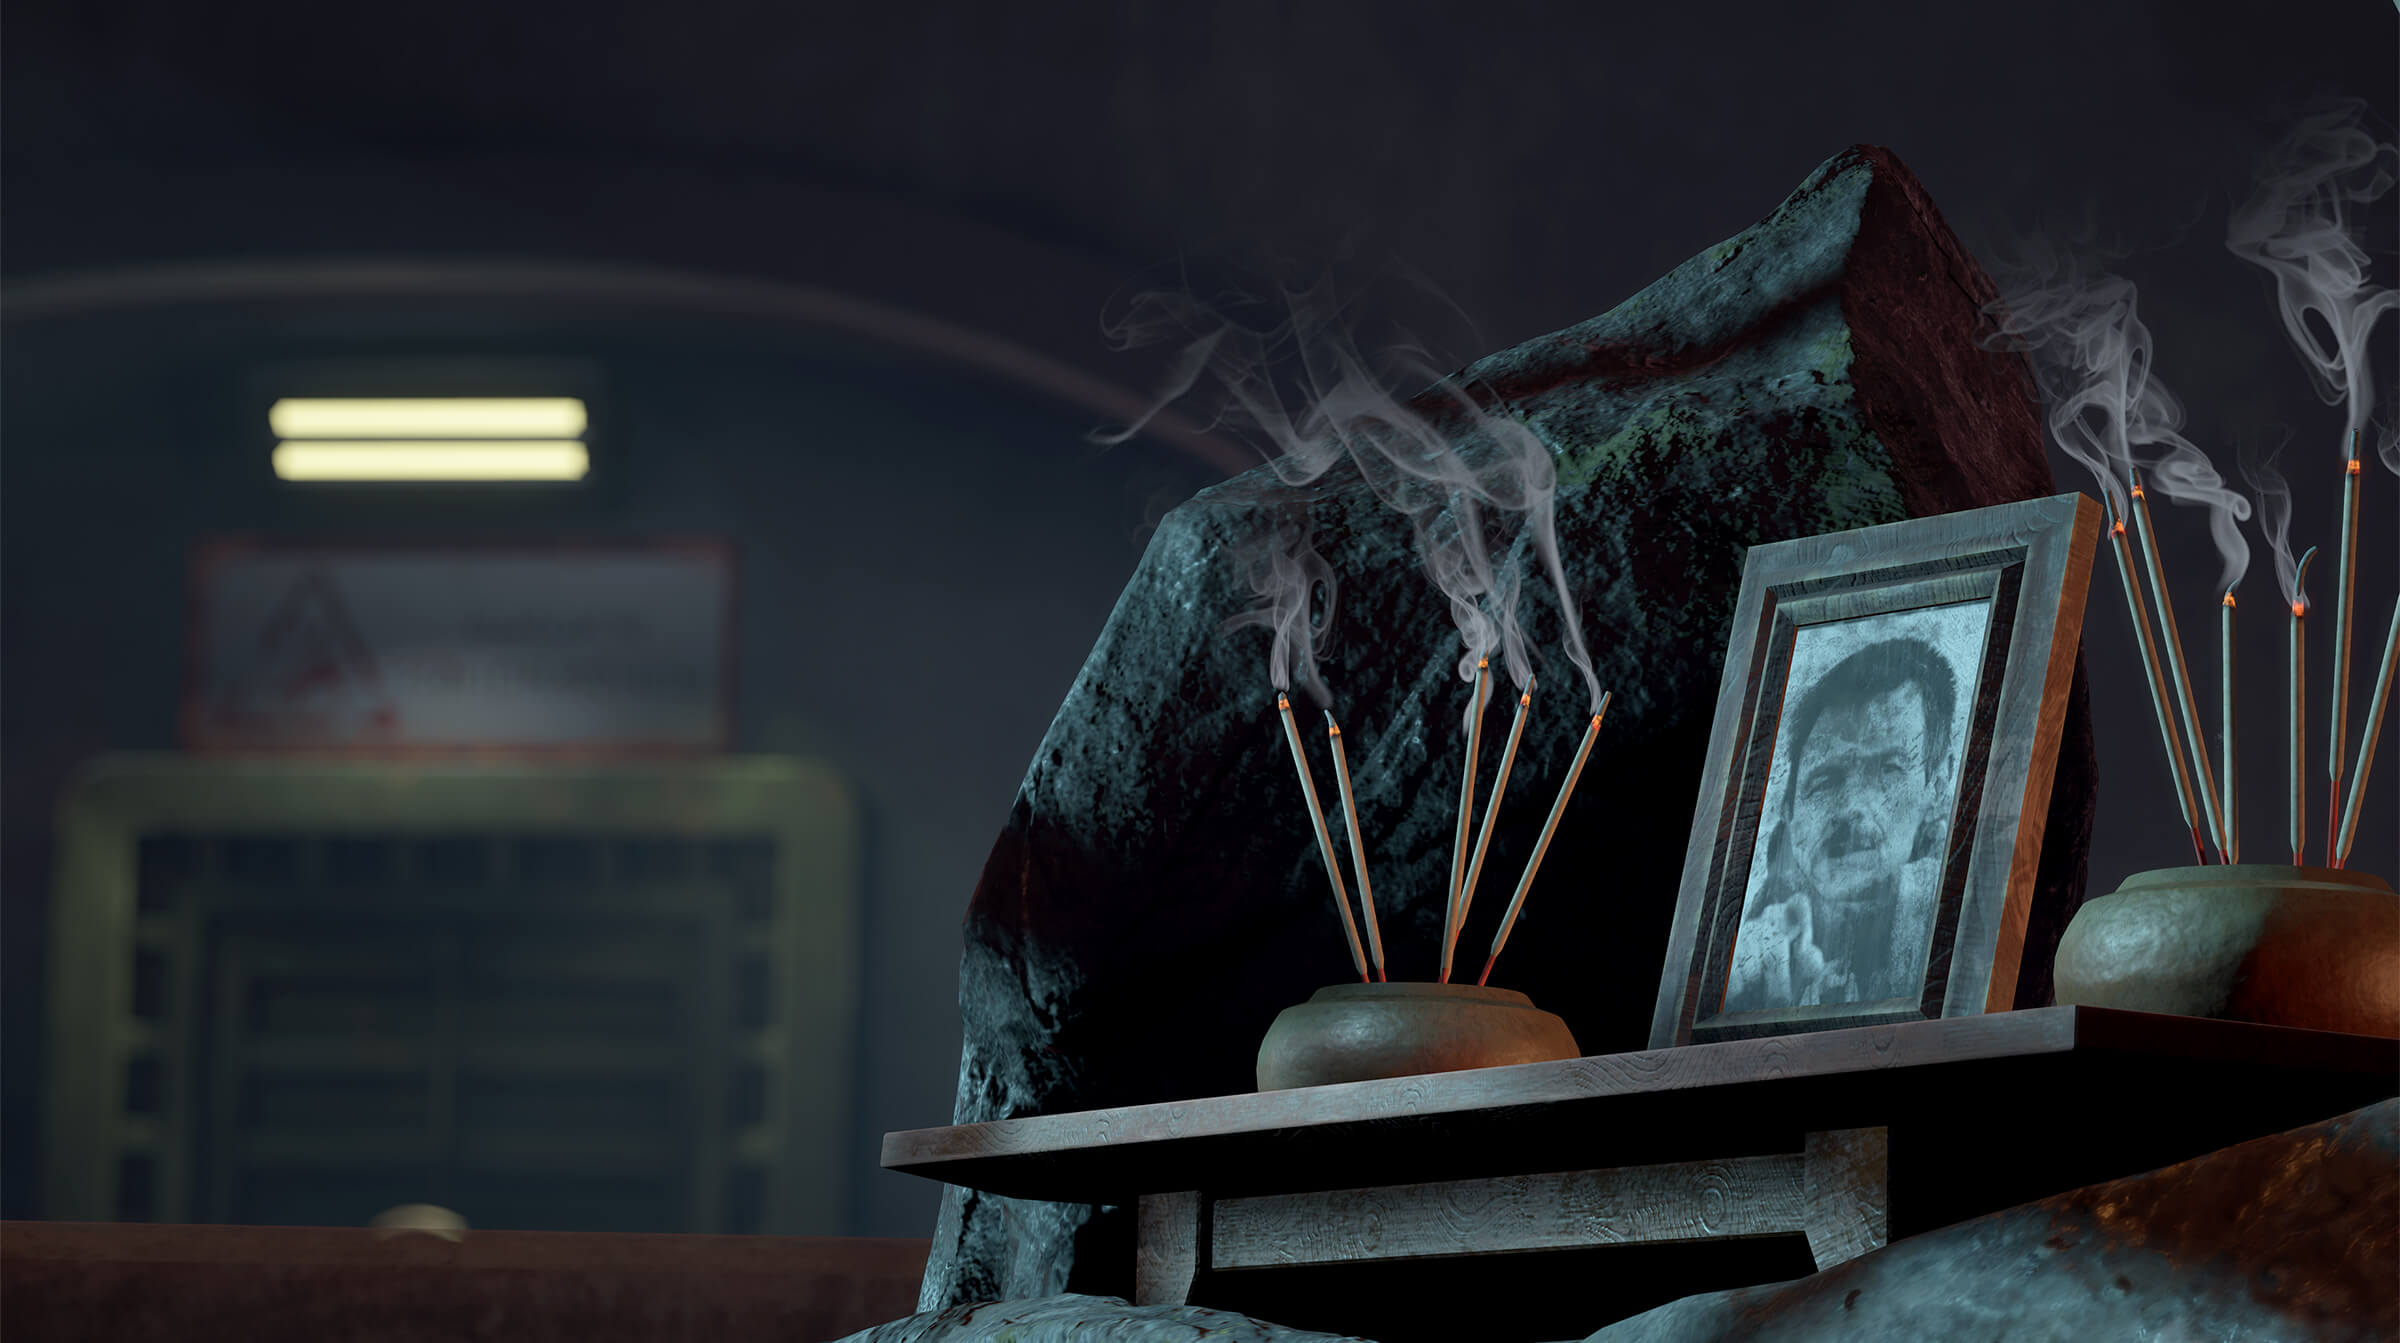 A framed picture of a man with lit incense surrounding it